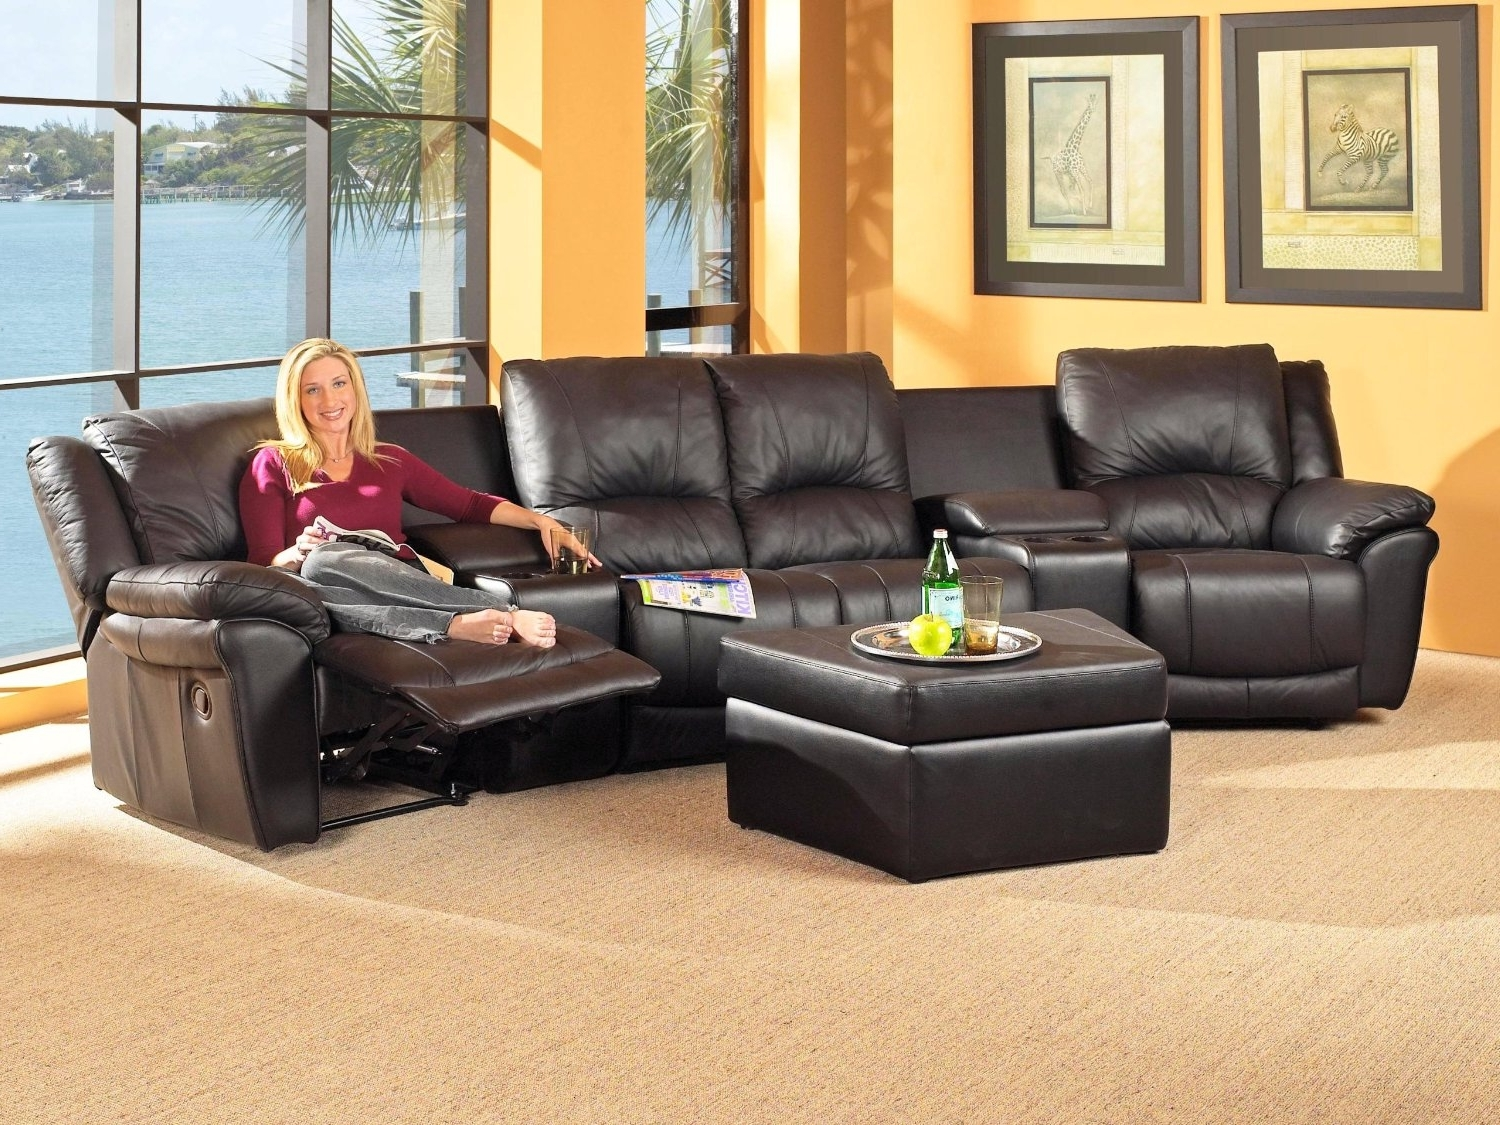 Well Liked Sectional Sofas With Recliners For Small Spaces Throughout Small Space Sectional Sofa – Decofurnish (View 15 of 15)